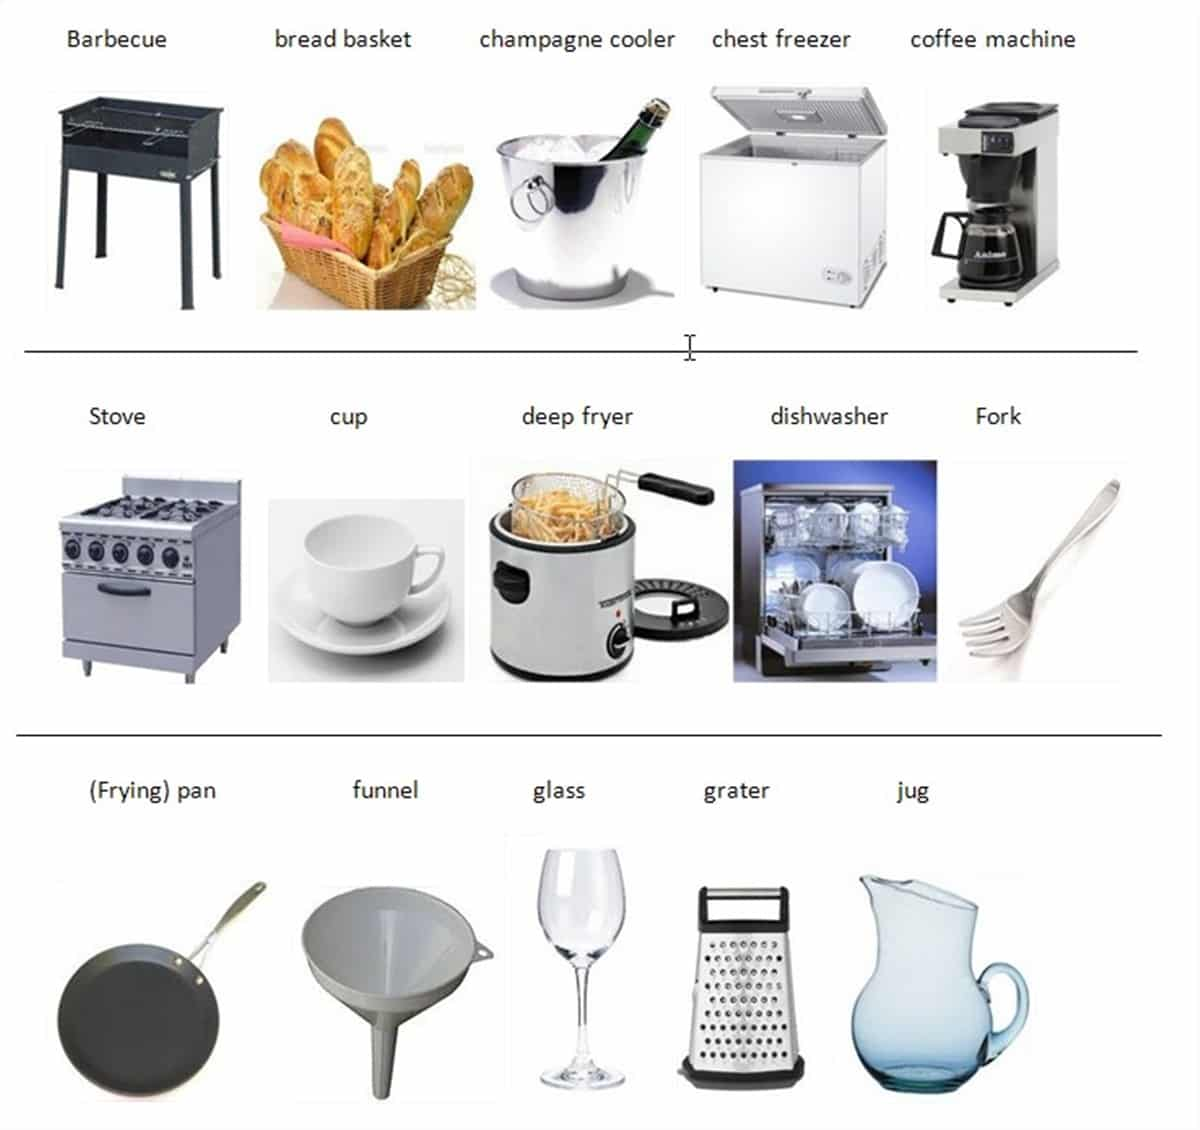 Vocabulario De Cocina En Ingles Quotin The Kitchen Quot Vocabulary 200 43 Objects Illustrated